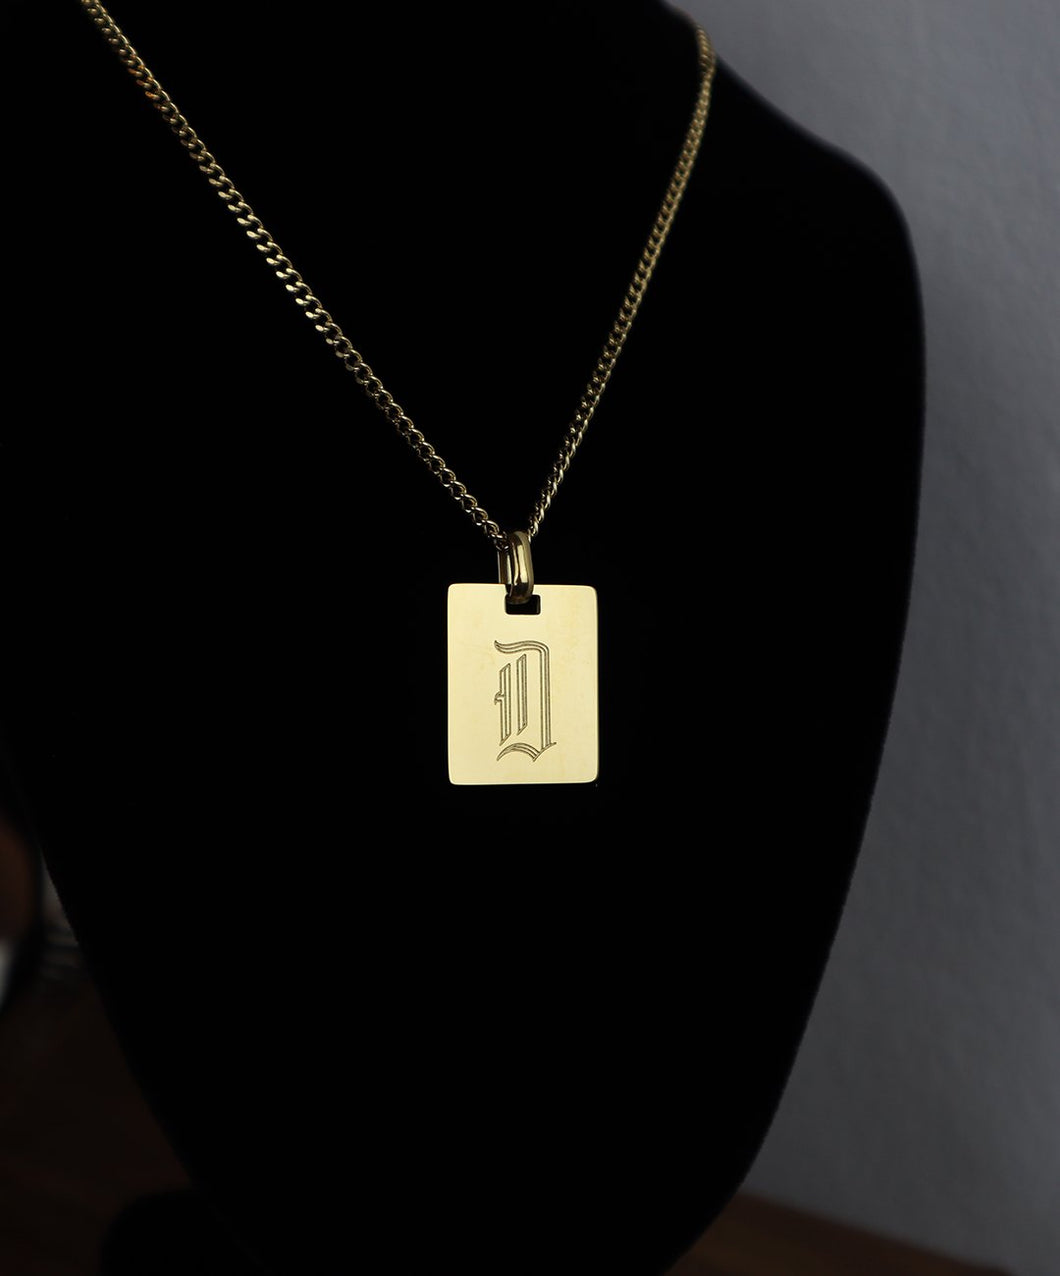 18k Gold Plate Necklace: D